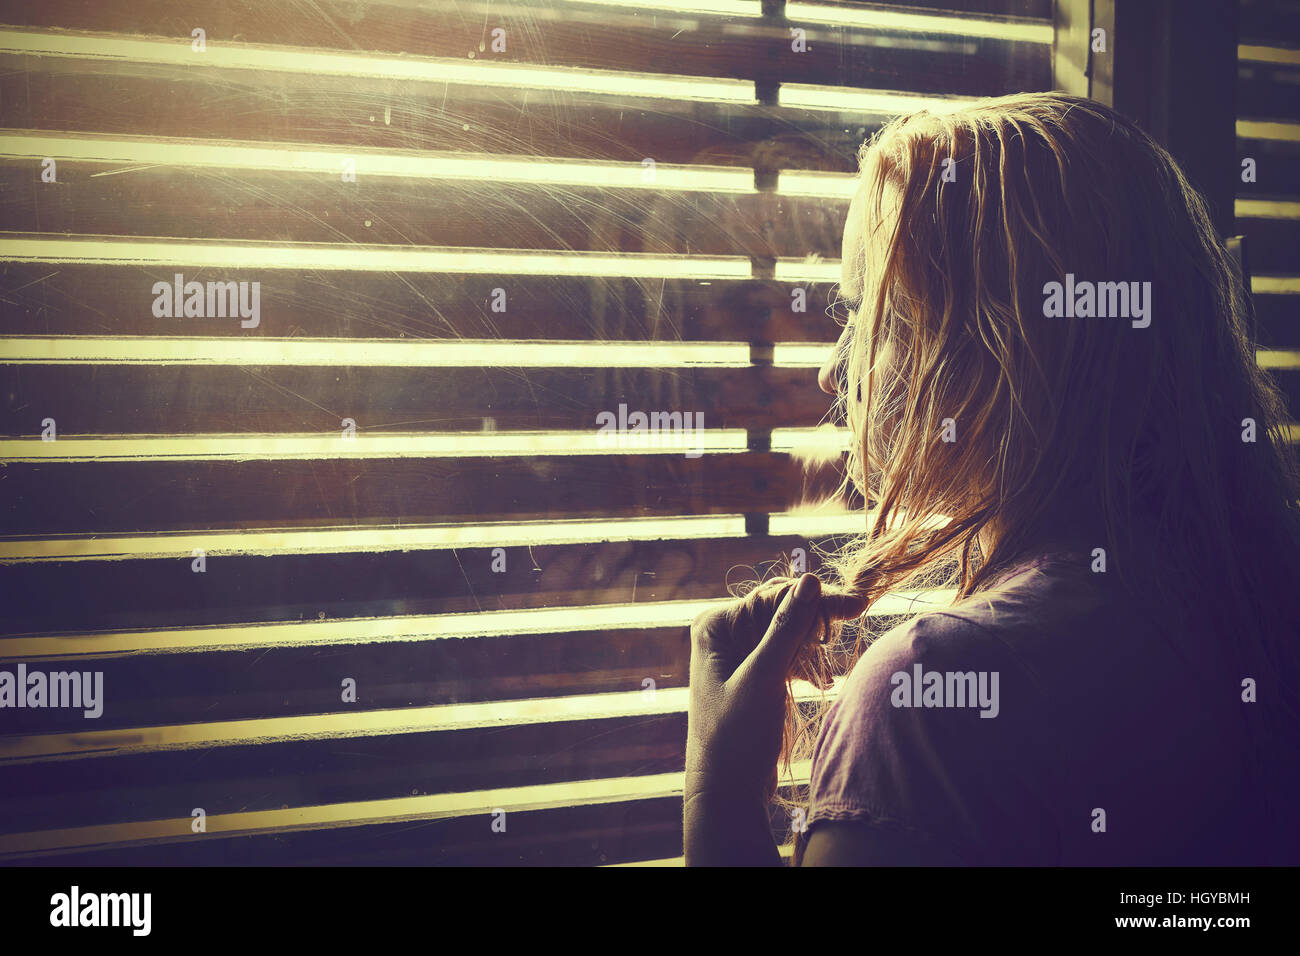 Image result for picture of sunlight through window blinds